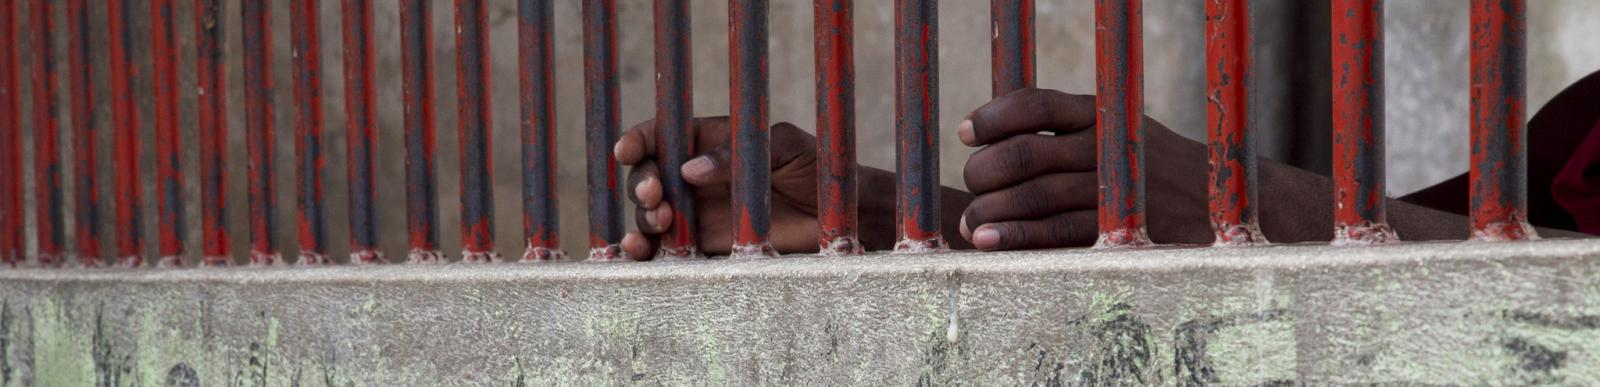 National Penitentiary of Haiti